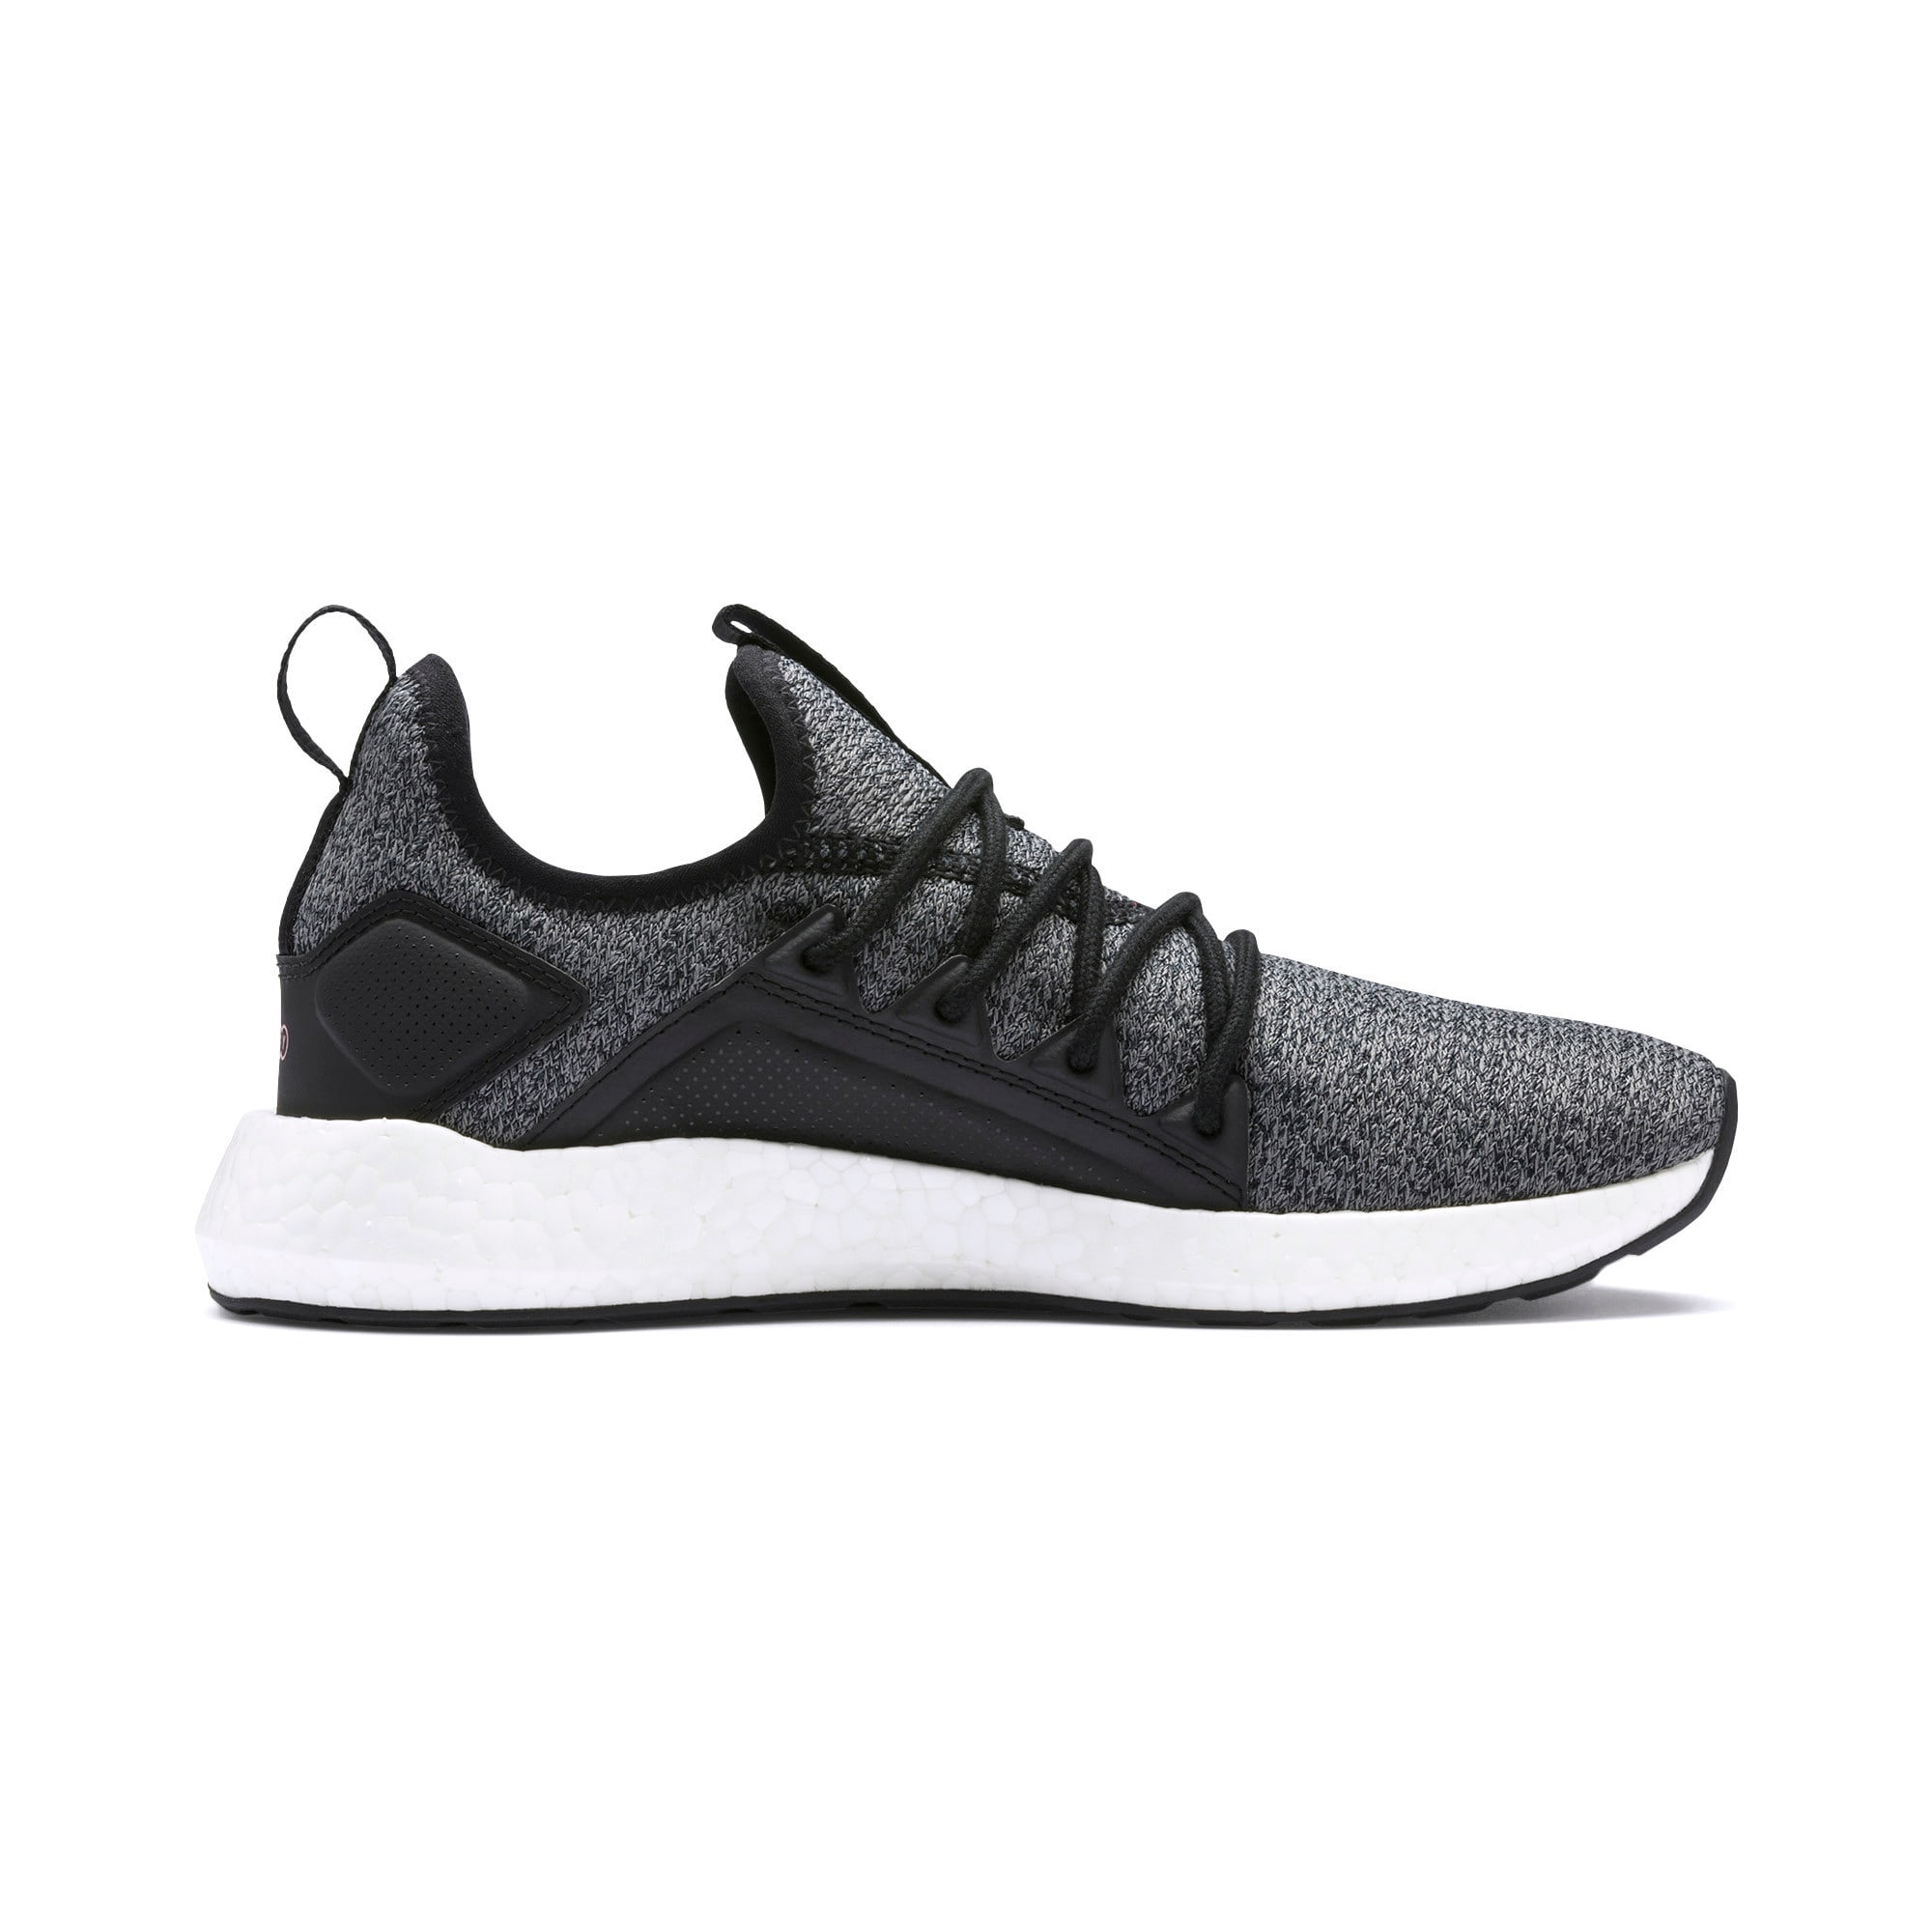 Thumbnail 6 of NRGY Neko Knit Women's Running Shoes, Puma Black-Bridal Rose, medium